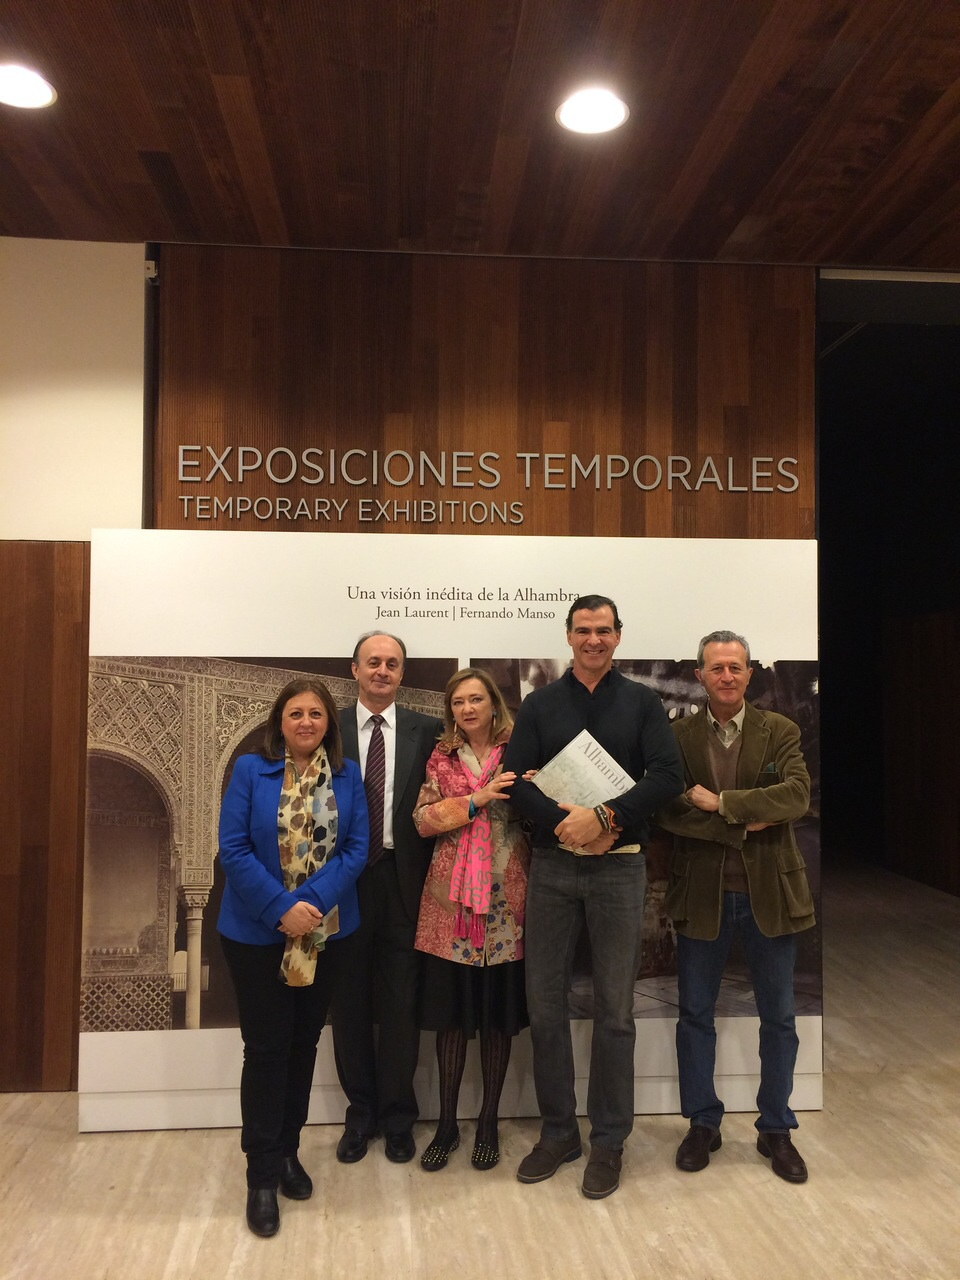 """Inauguration of the echibition entitled """"A hitherto unseen vision of the Alhambra"""" – Jean Laurent and Fernando Manso"""